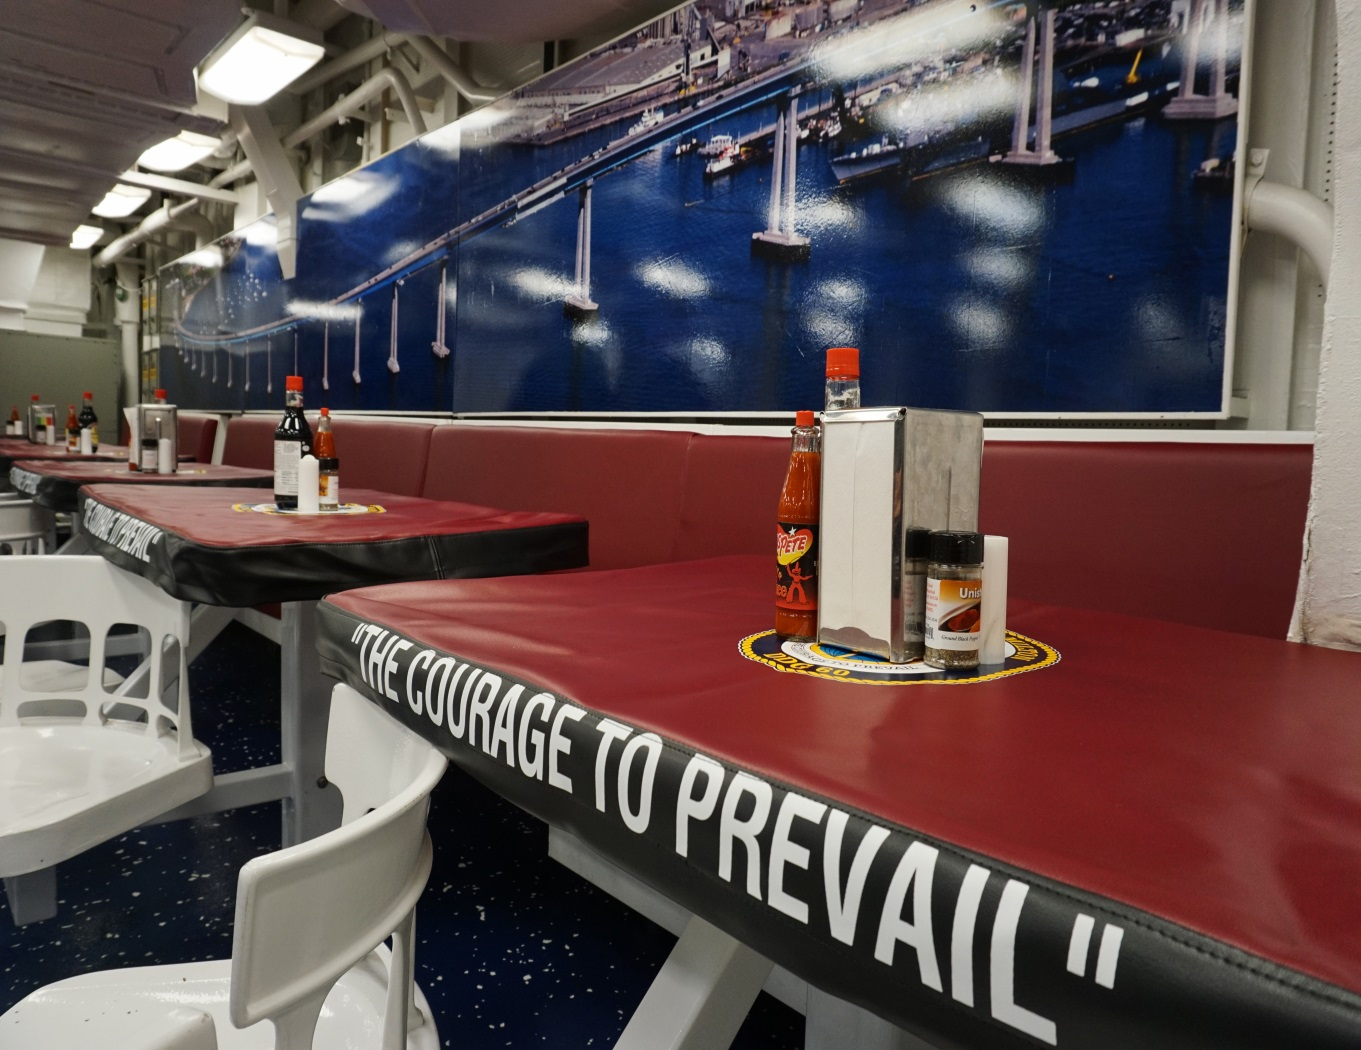 SAN DIEGO, CA. – SAN DIEGO, CA. – The crew of the guided missile destroyer USS PAUL HAMILTON (DDG 60) celebrated the re-opening of the ship's galley and mess decks January 22, 2018